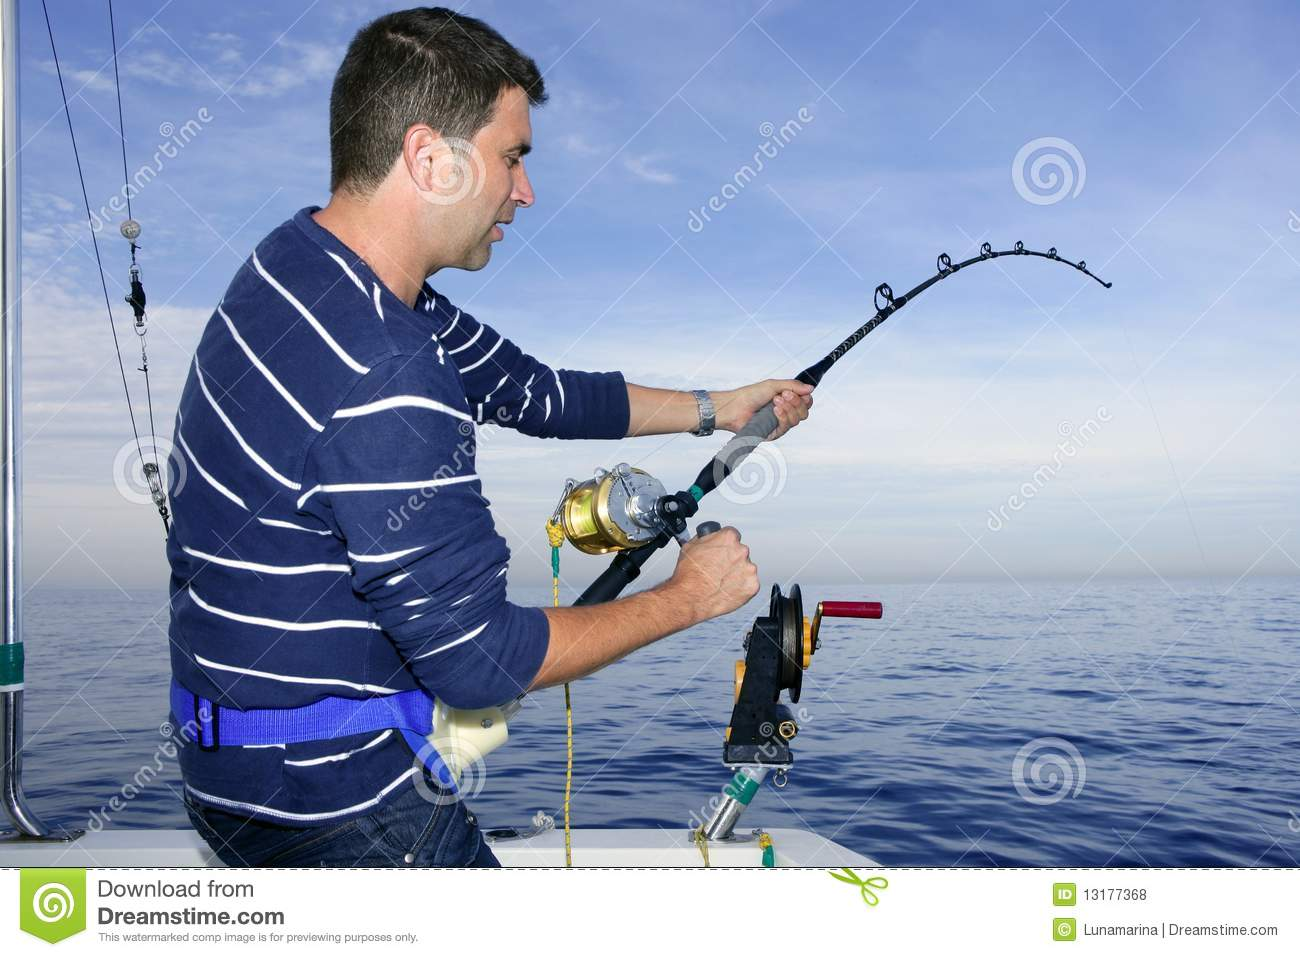 Angler fisherman fighting big fish rod and reel stock for How many fishing rods per person in texas